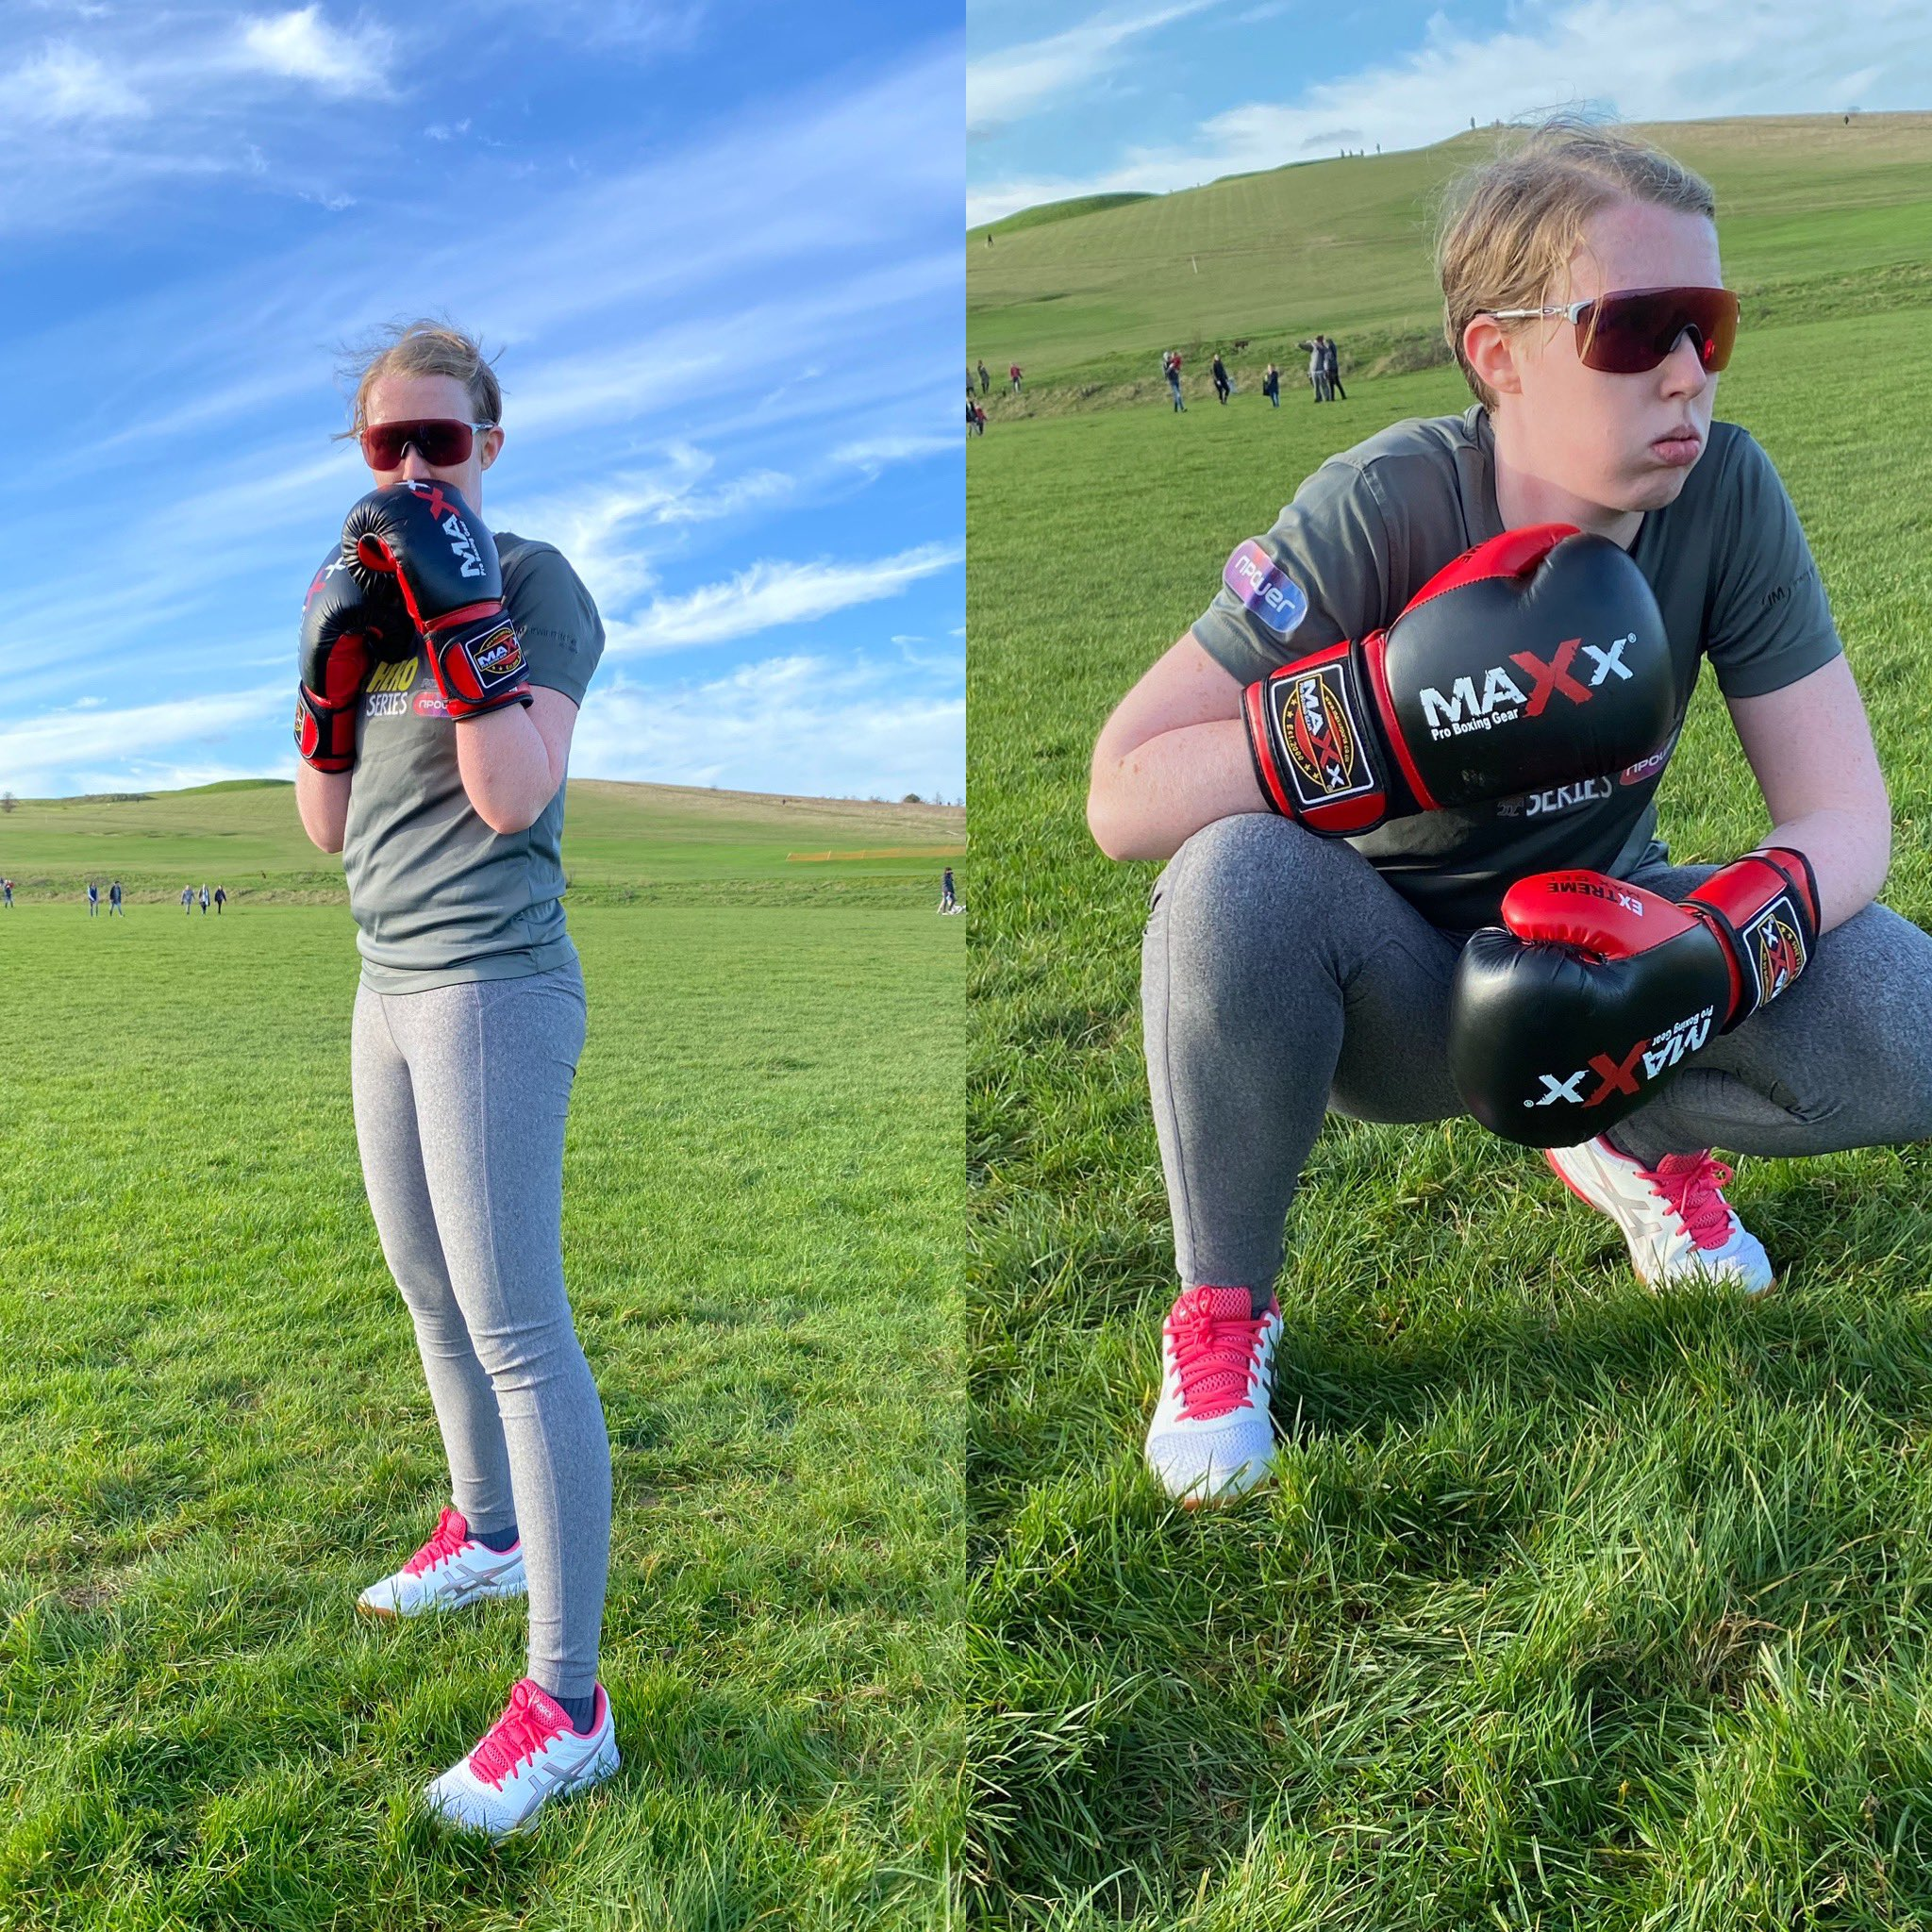 Two images, one of Georgie stood in a boxing stance with her boxing gloves on and the other of her crouched down with her boxing gloves on.